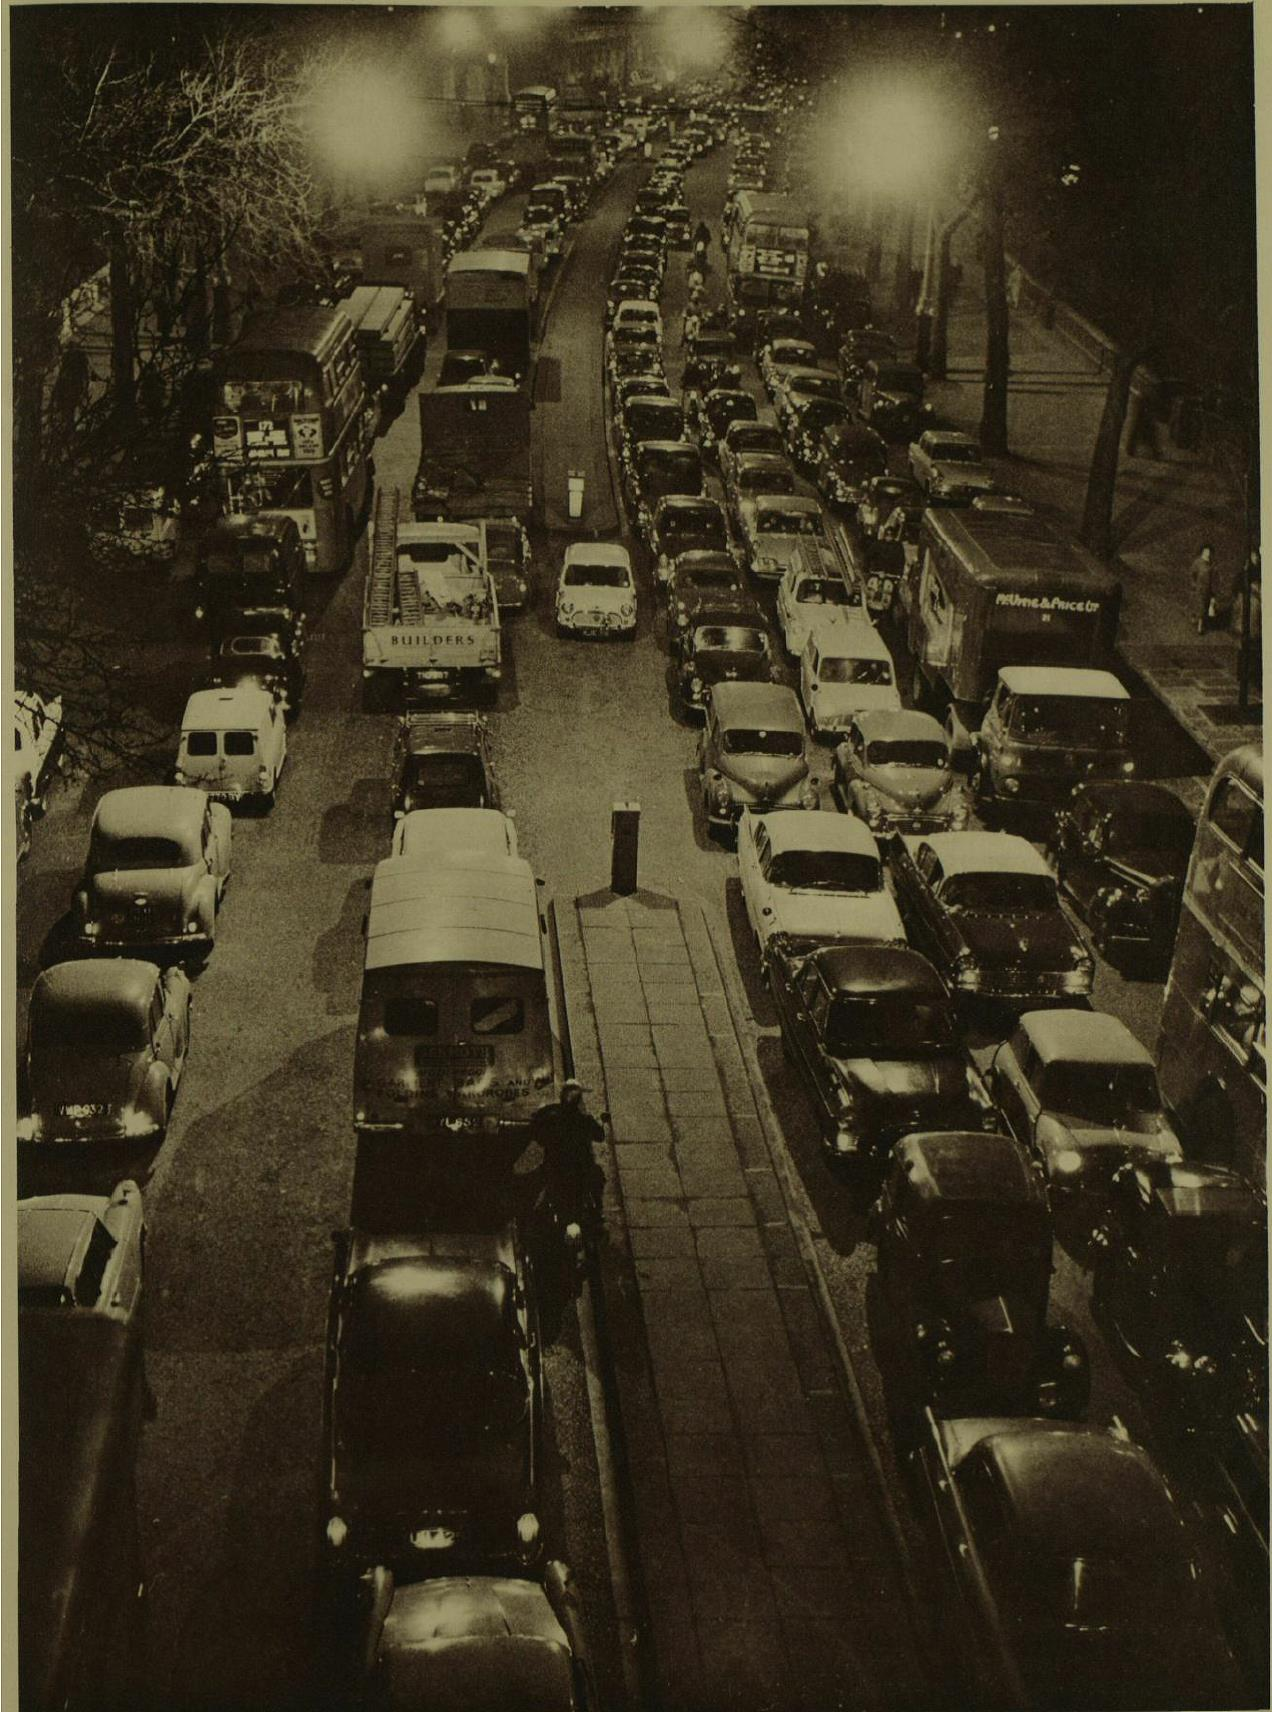 The Embankment from Westminster Bridge on the evening of the Tube strike. London Illustrated News, February 3rd 1962.